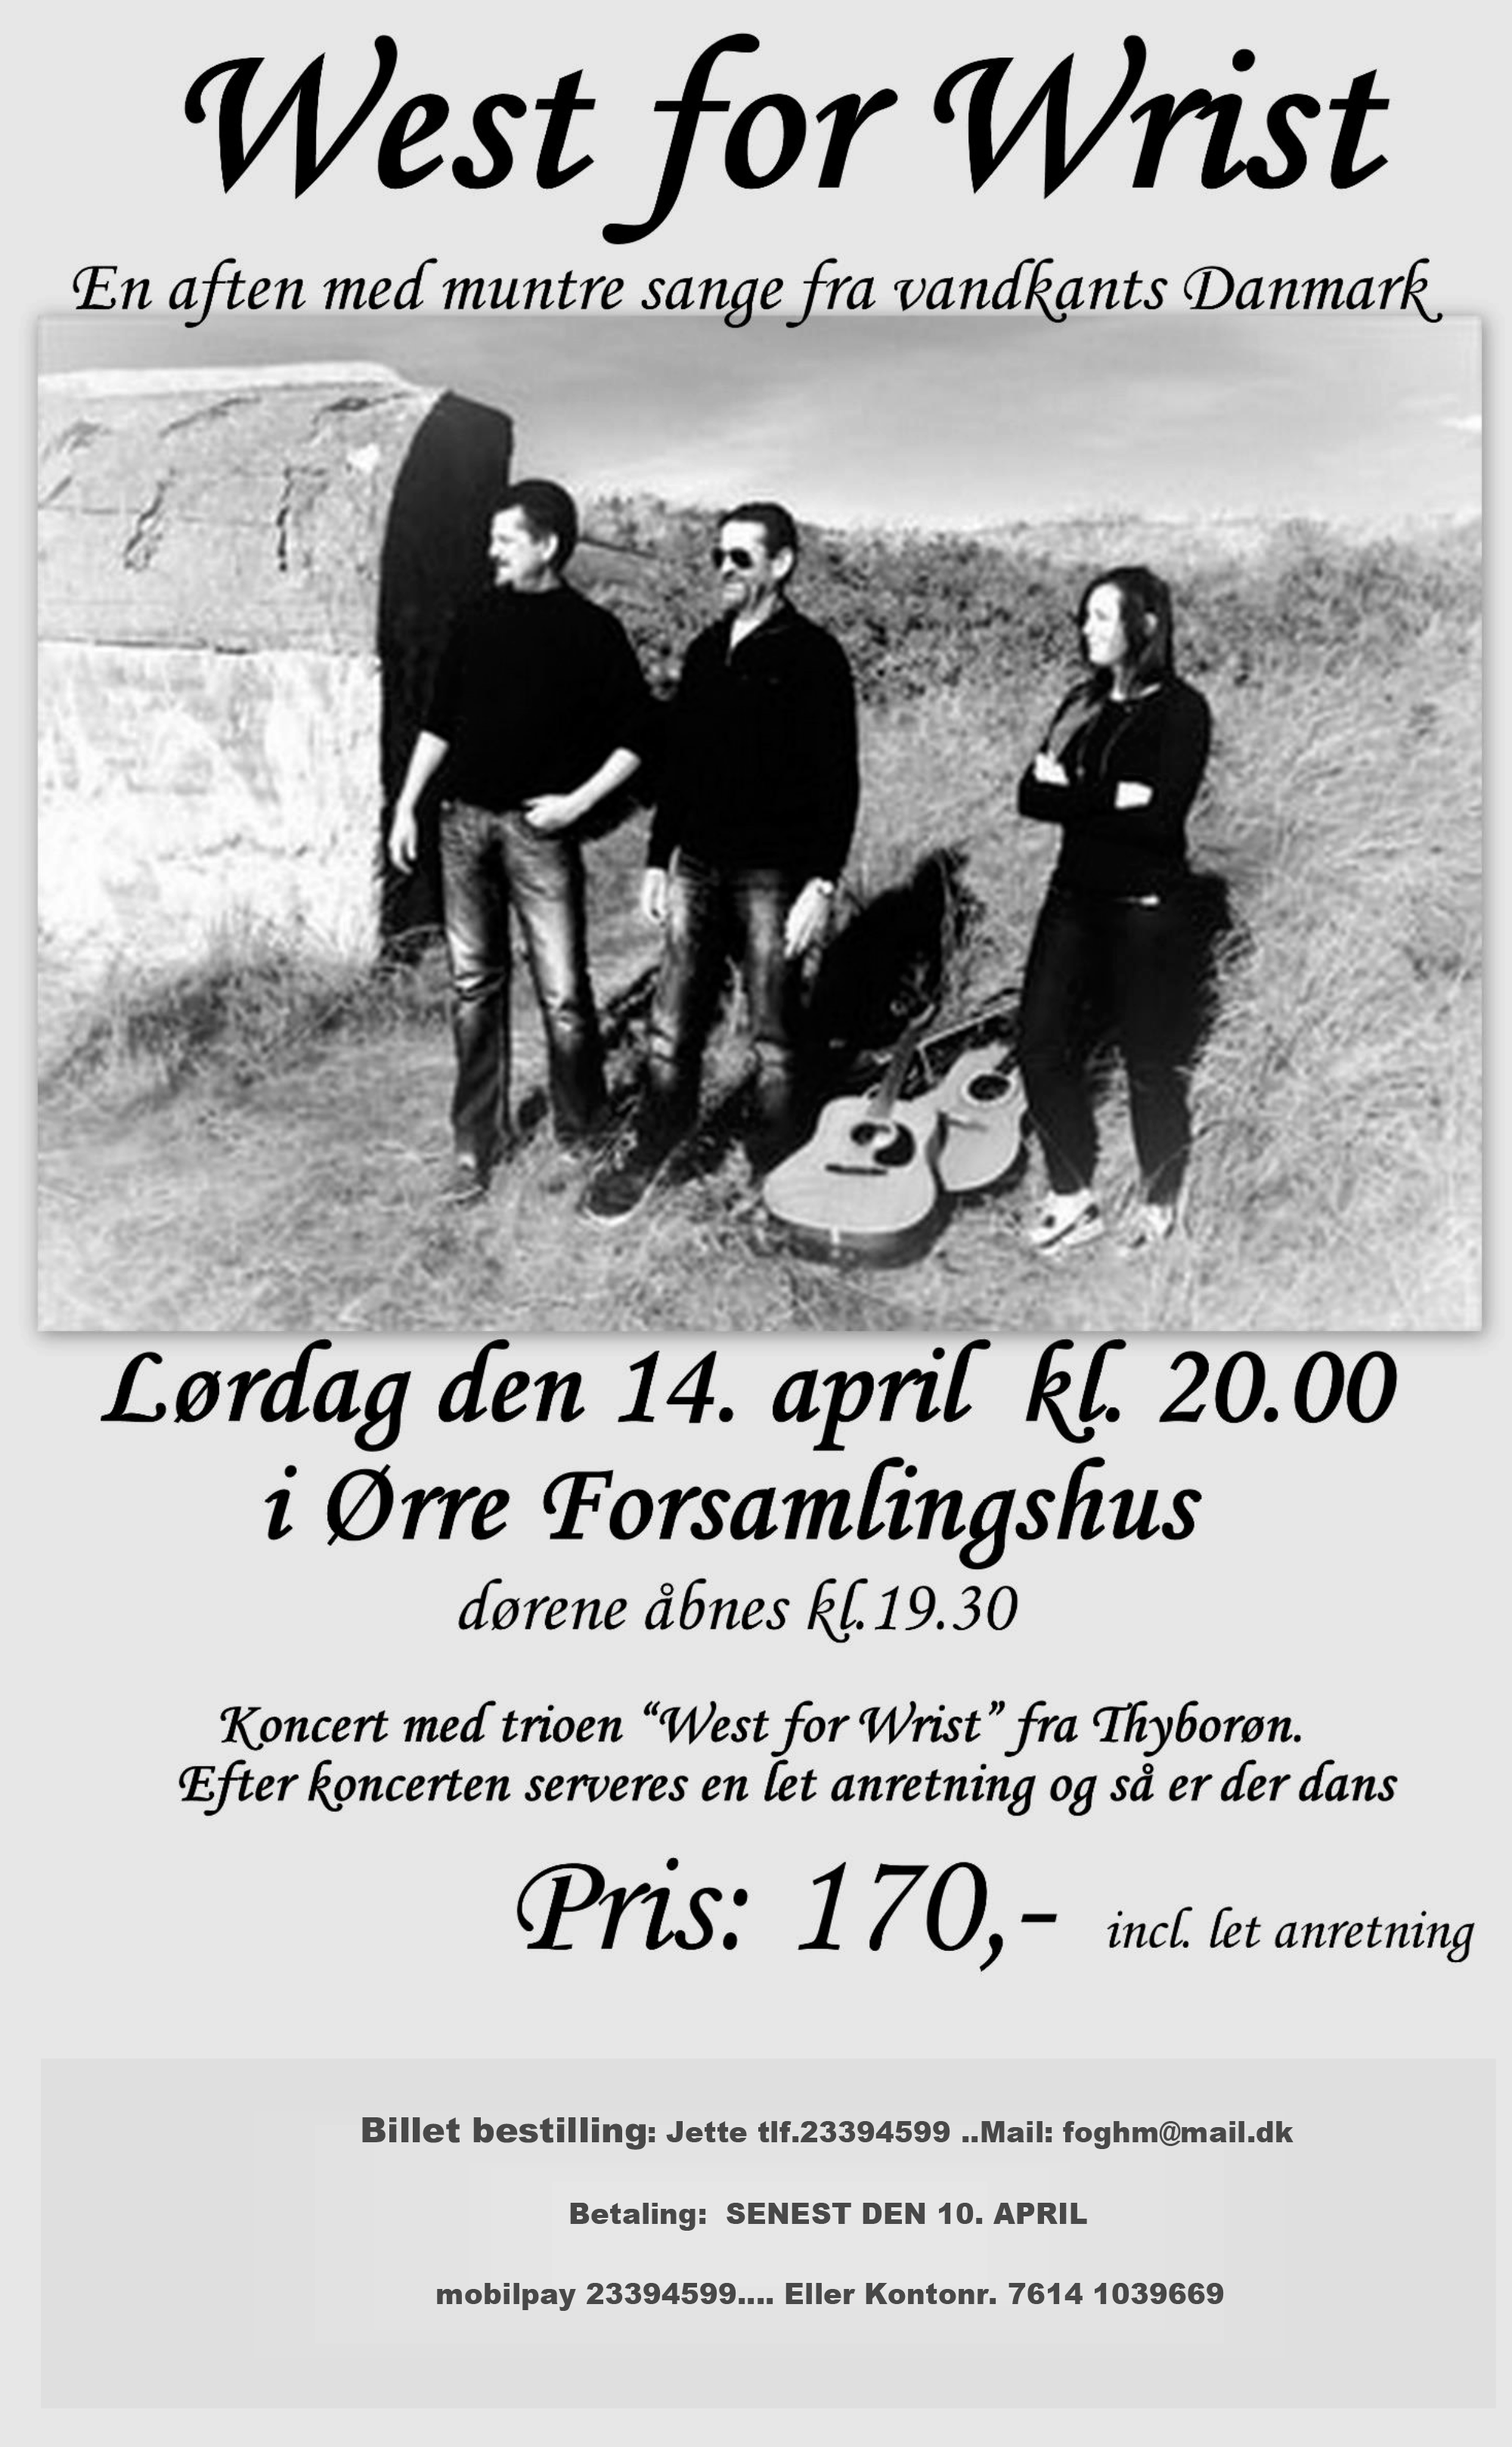 plakat for arrangement, ring til Jette på telefon 23394599 for yderligere information